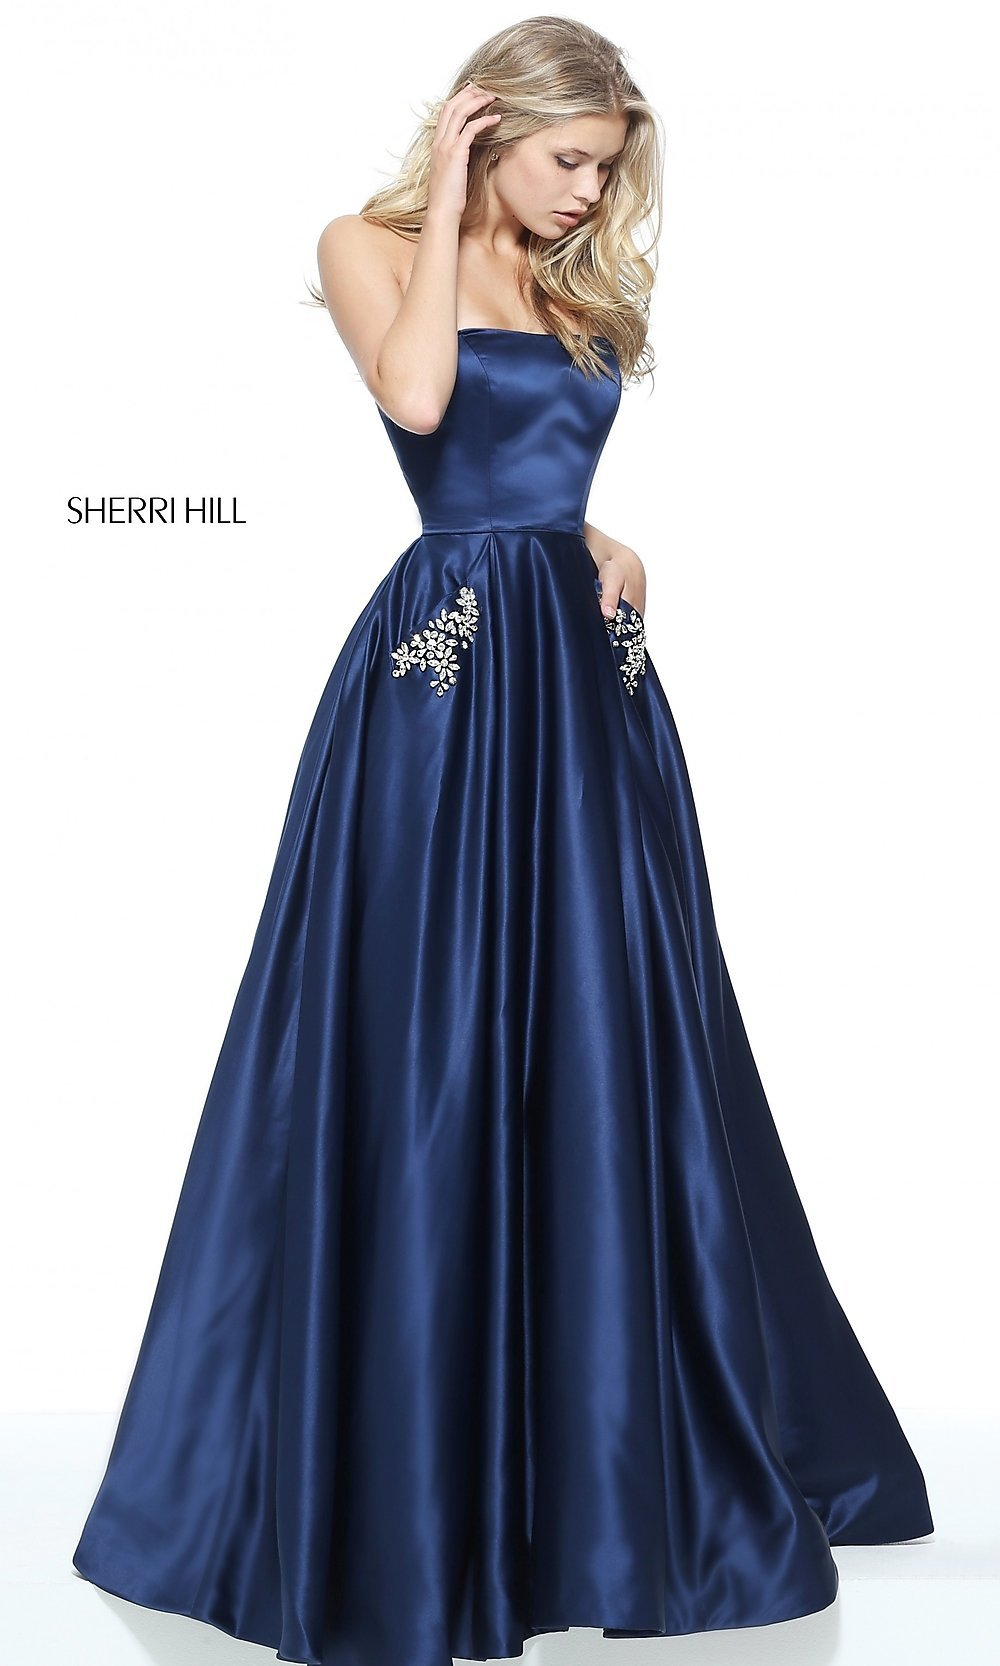 Sherri Hill Ball Gowns